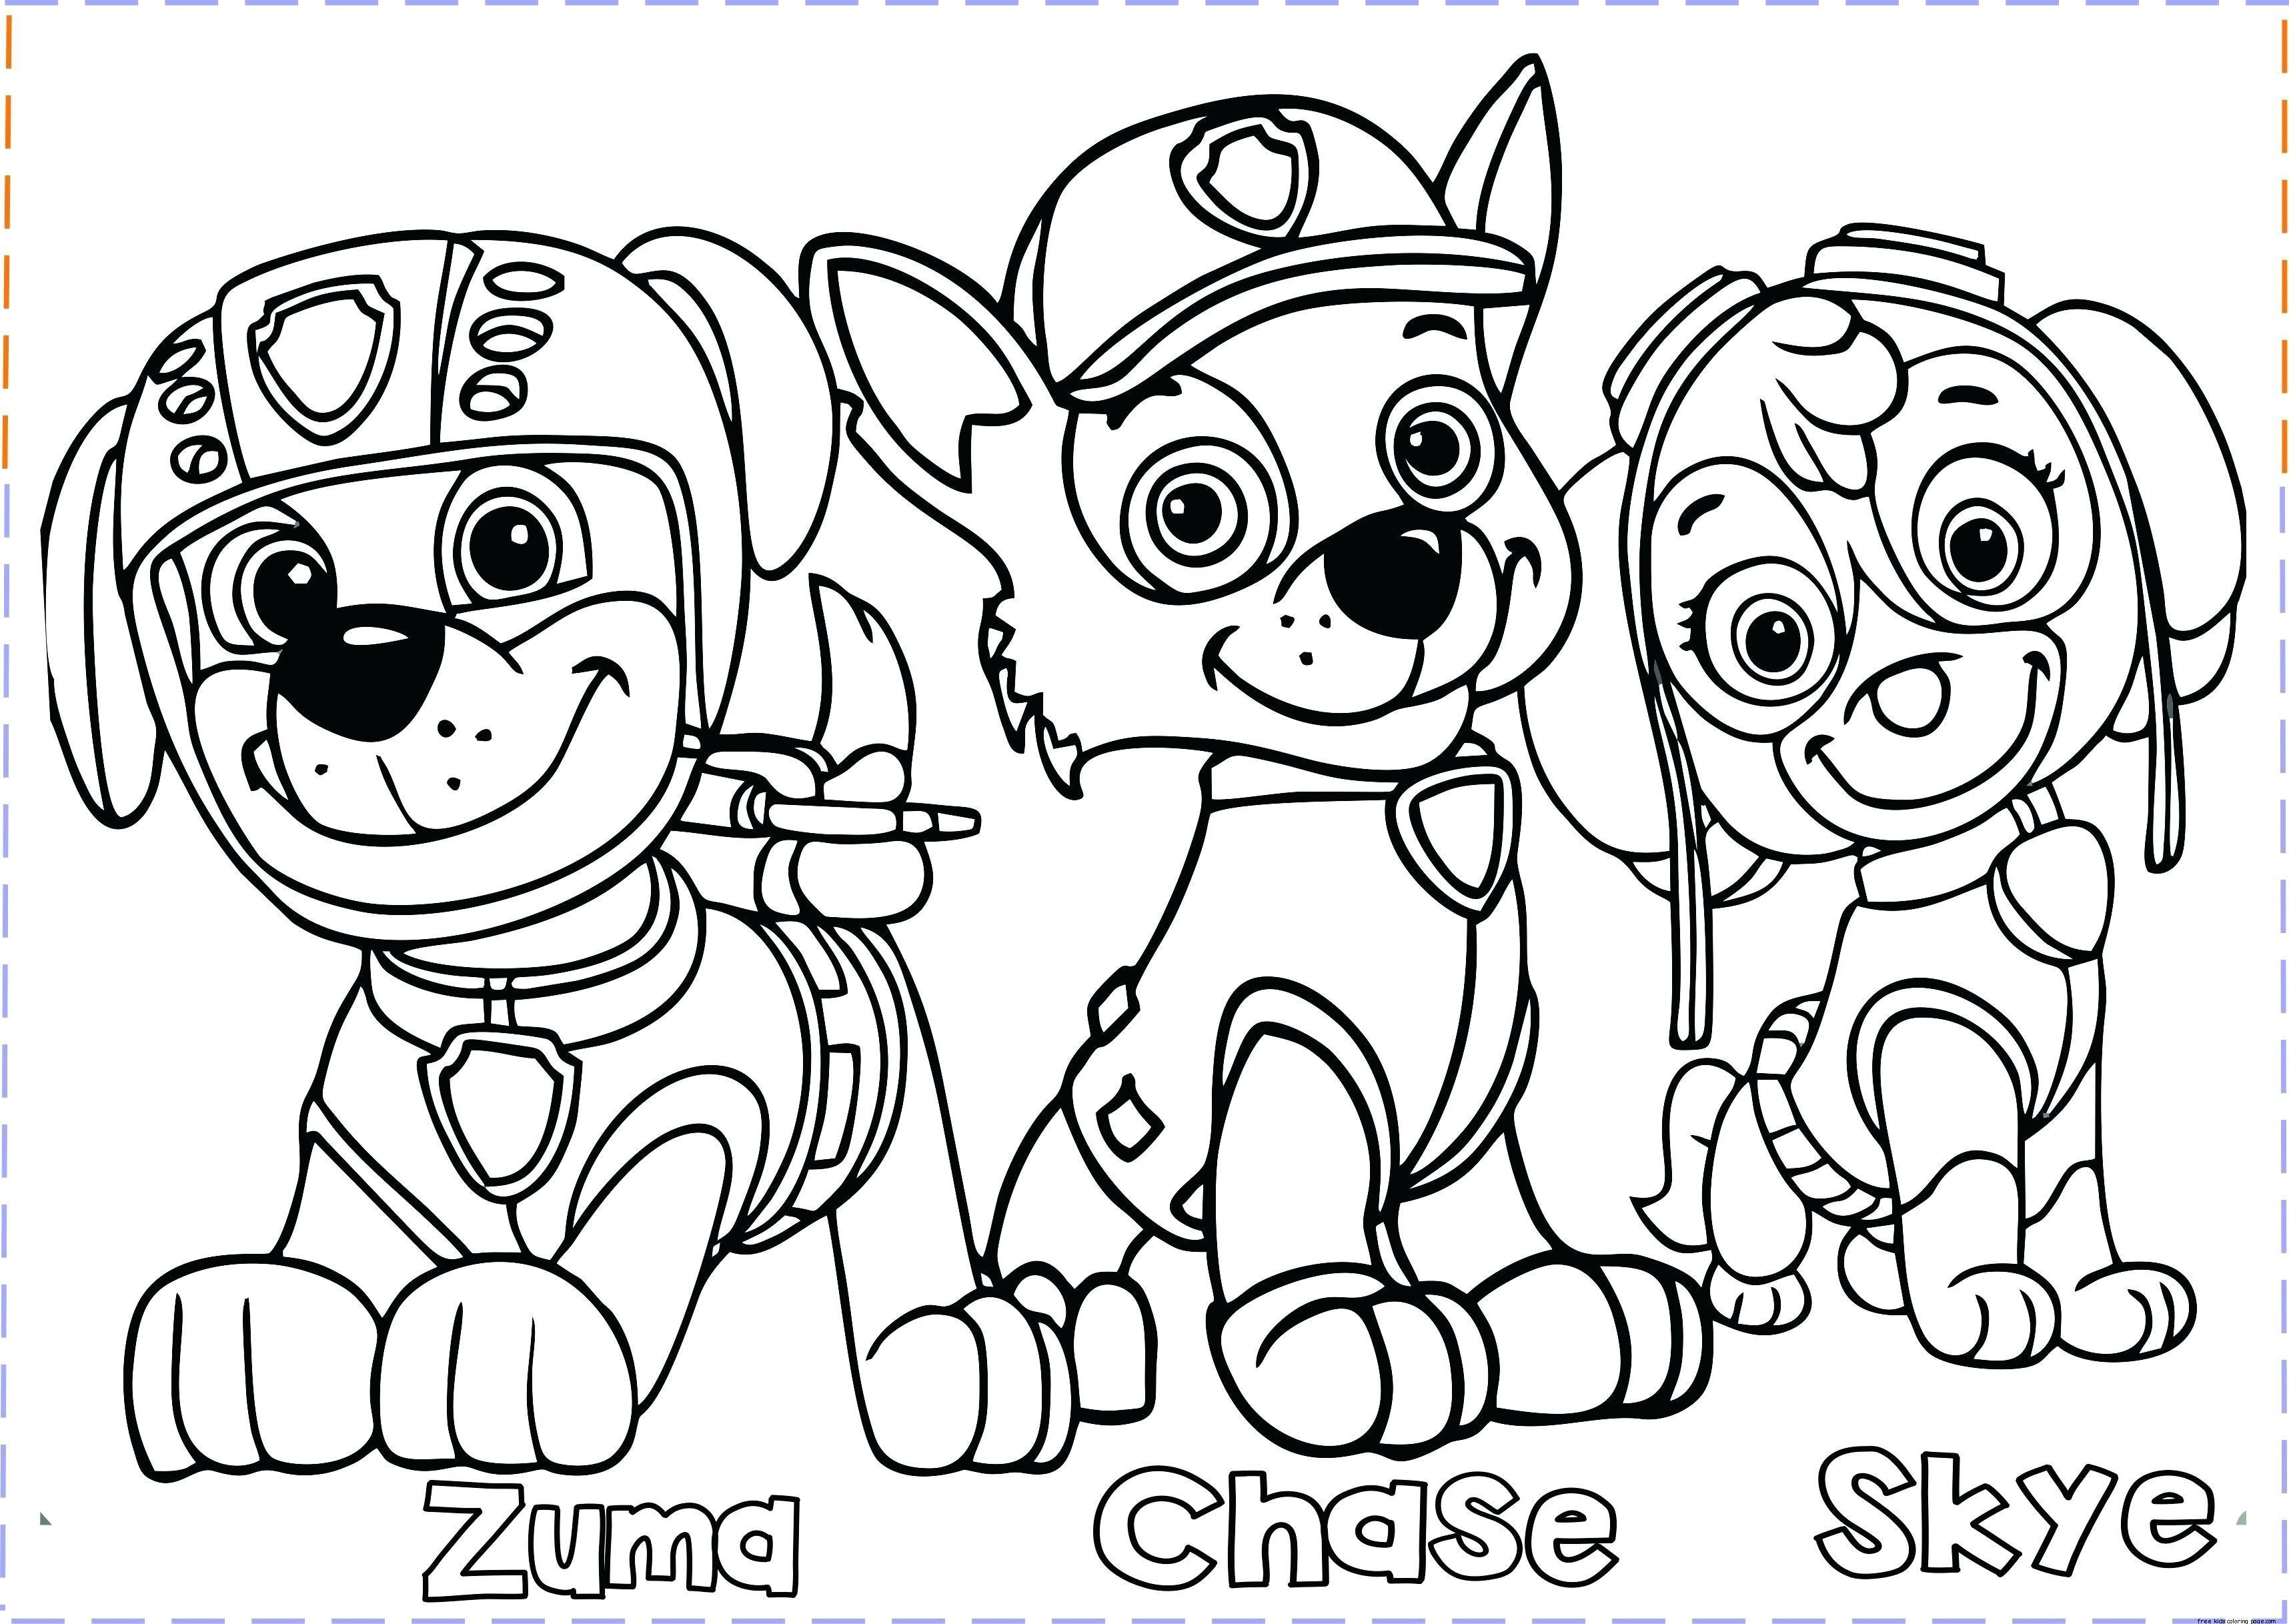 16 Coloring Page For Kid Paw Patrol Coloring Paw Patrol Coloring Pages Cartoon Coloring Pages